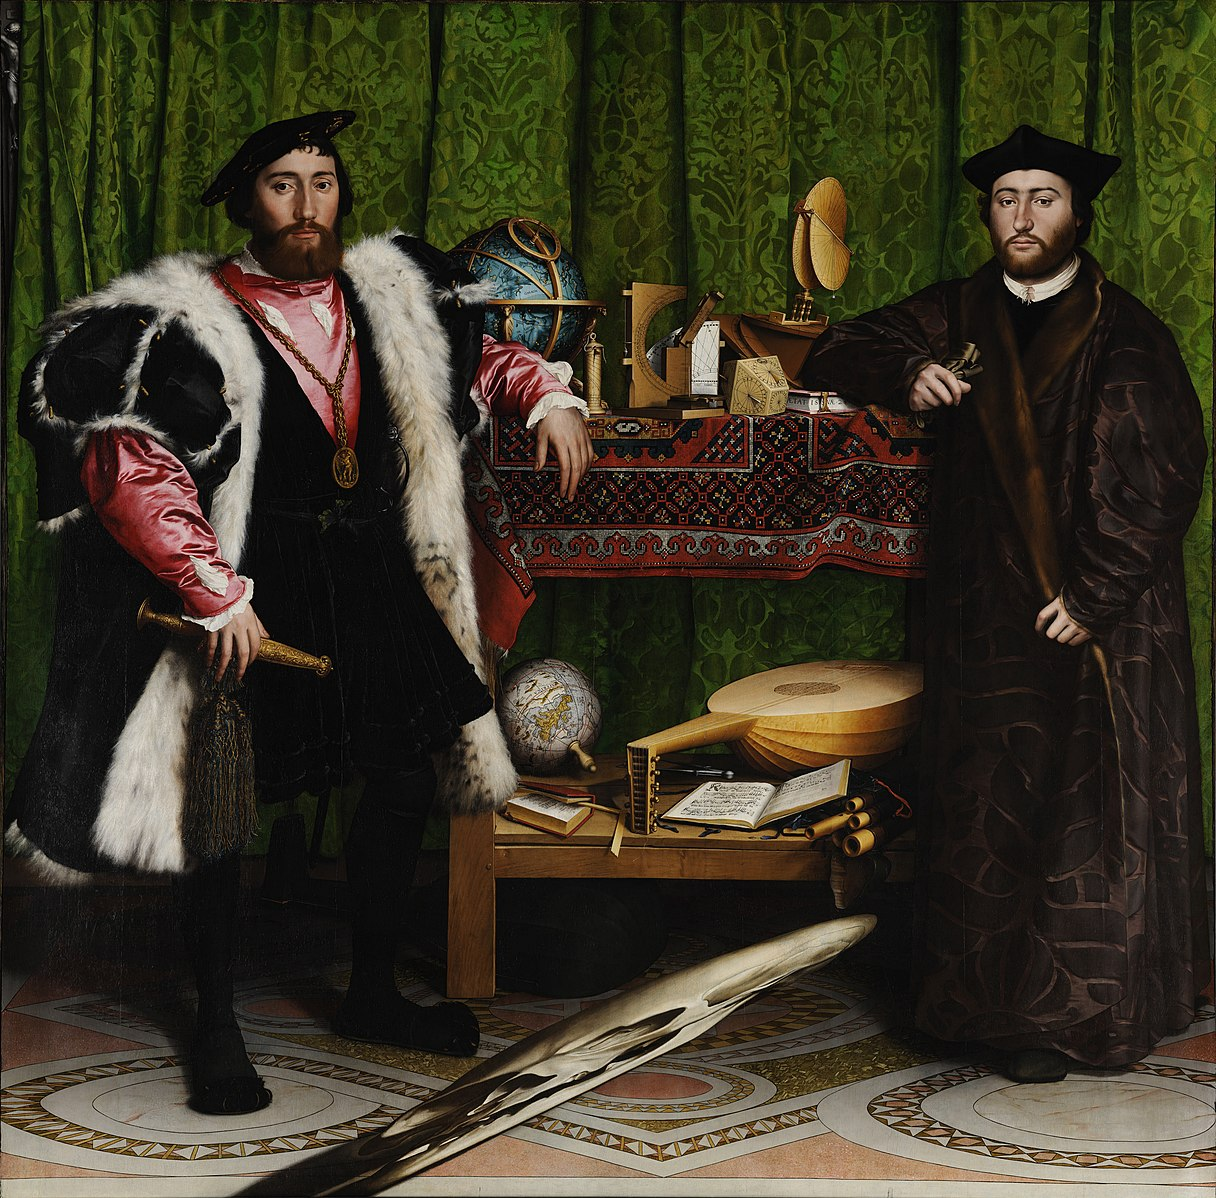 Image of Hans Holbein's The Ambassadors